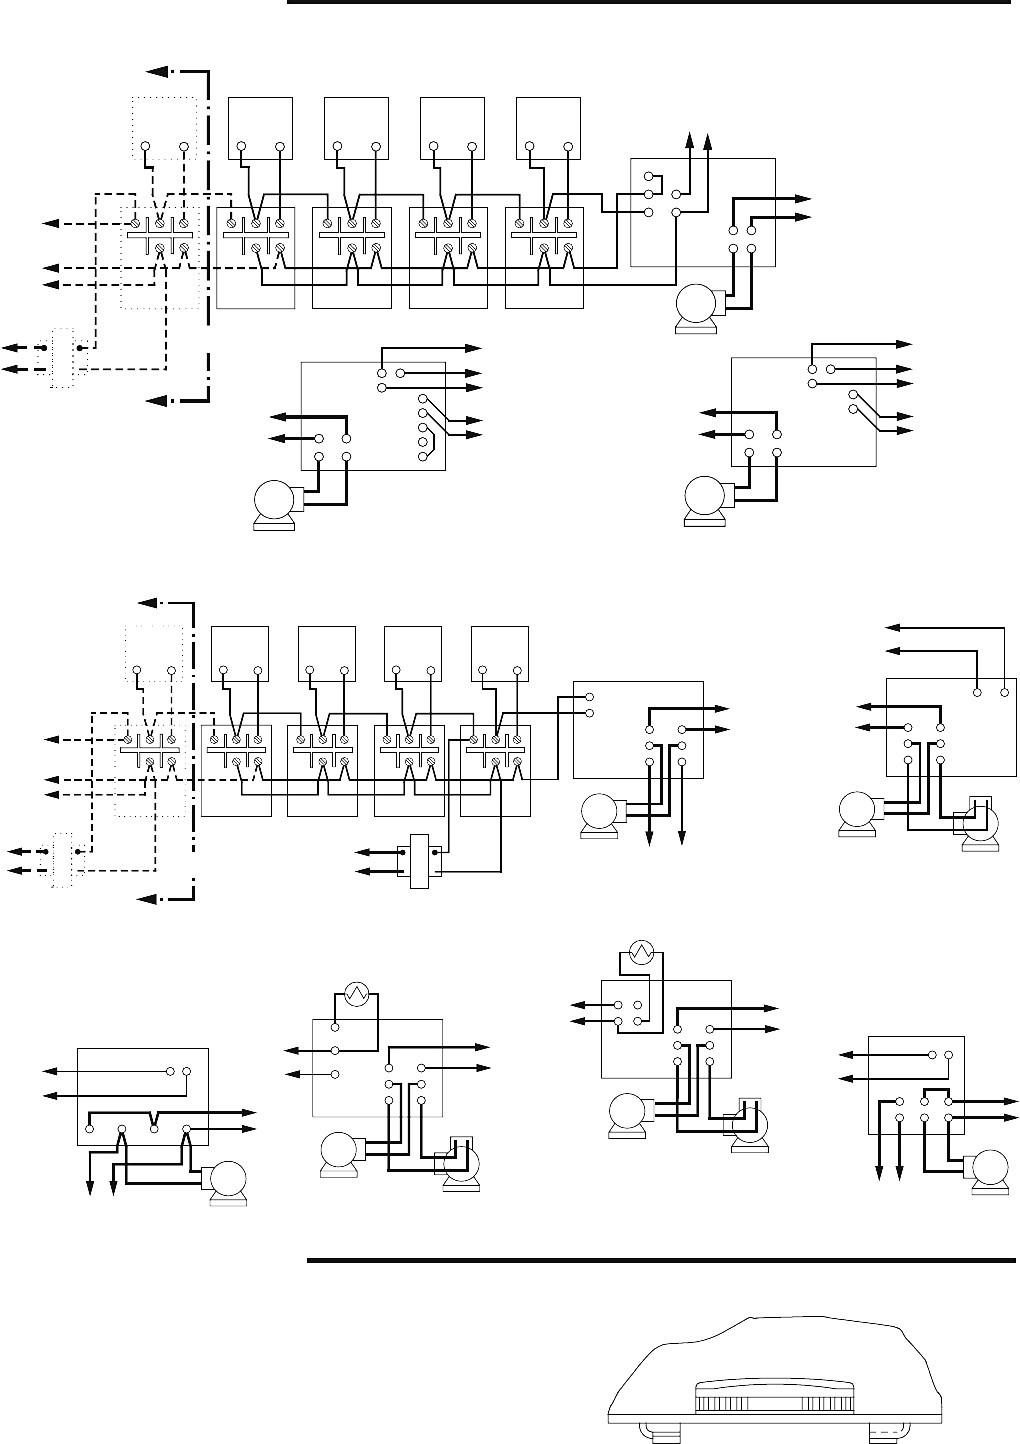 White Rodgers 1311 102 Wiring Diagram - White Rodgers Zone Valve Wiring Diagram Brilliant Sevimliler Lovely Rh Bjzhjy Net 20m